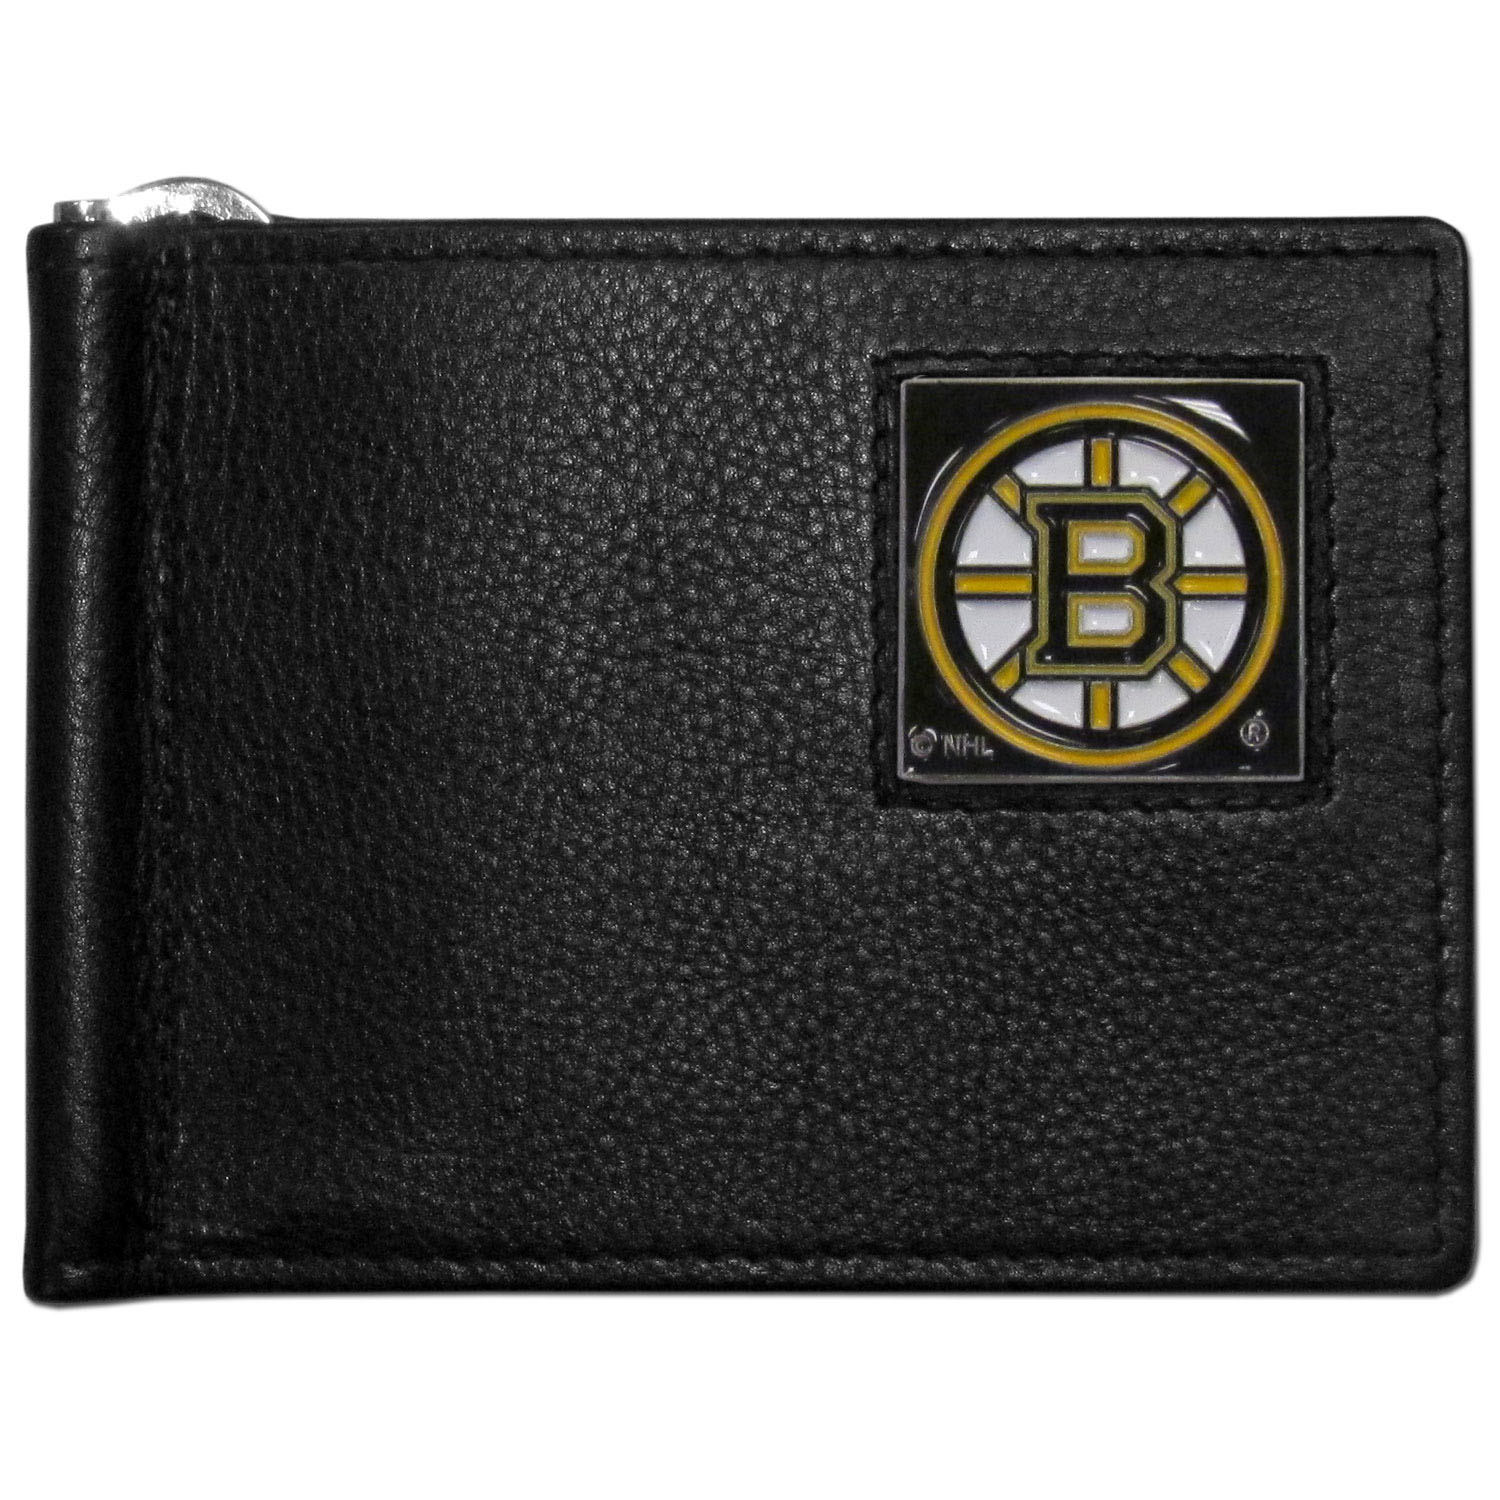 Boston Bruins® Leather Bill Clip Wallet - This cool new style wallet features an inner, metal bill clip that lips up for easy access. The super slim wallet holds tons of stuff with ample pockets, credit card slots & windowed ID slot. The wallet is made of genuine fine grain leather and it finished with a metal Boston Bruins® emblem. The wallet is shipped in gift box packaging.